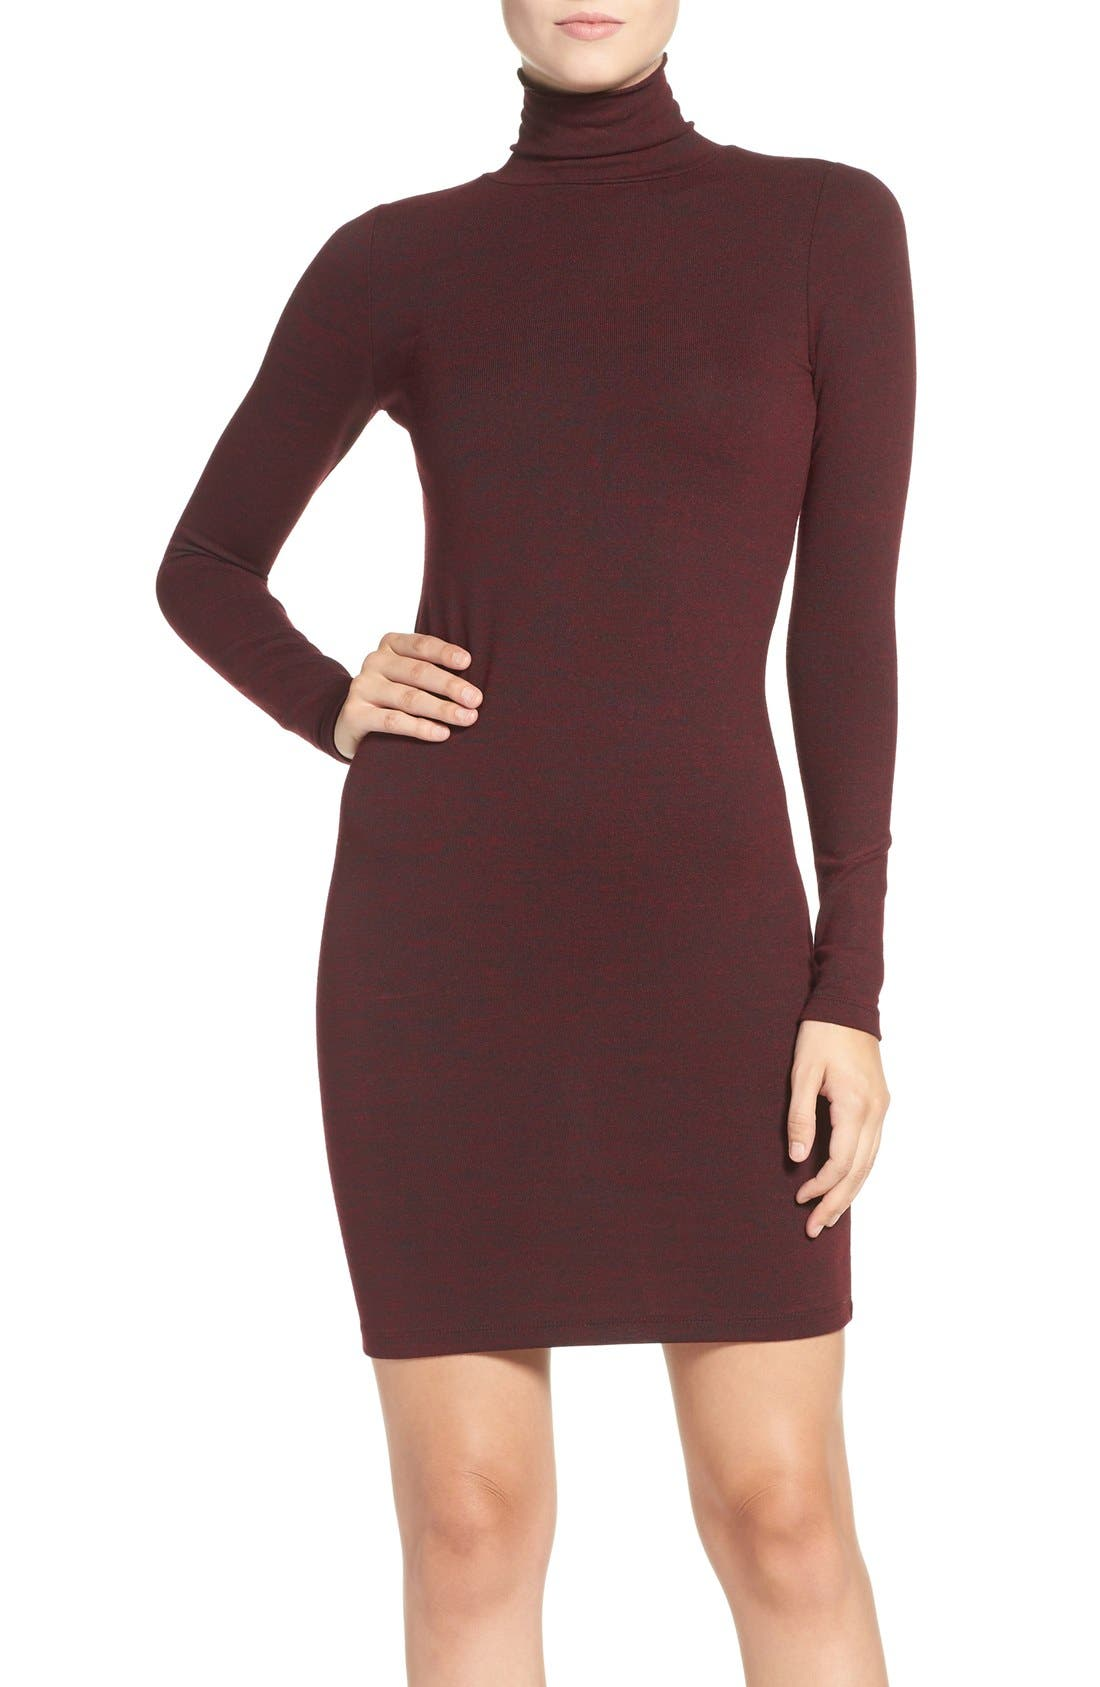 Alternate Image 1 Selected - French Connection 'Sweeter' Turtleneck Sweater Dress